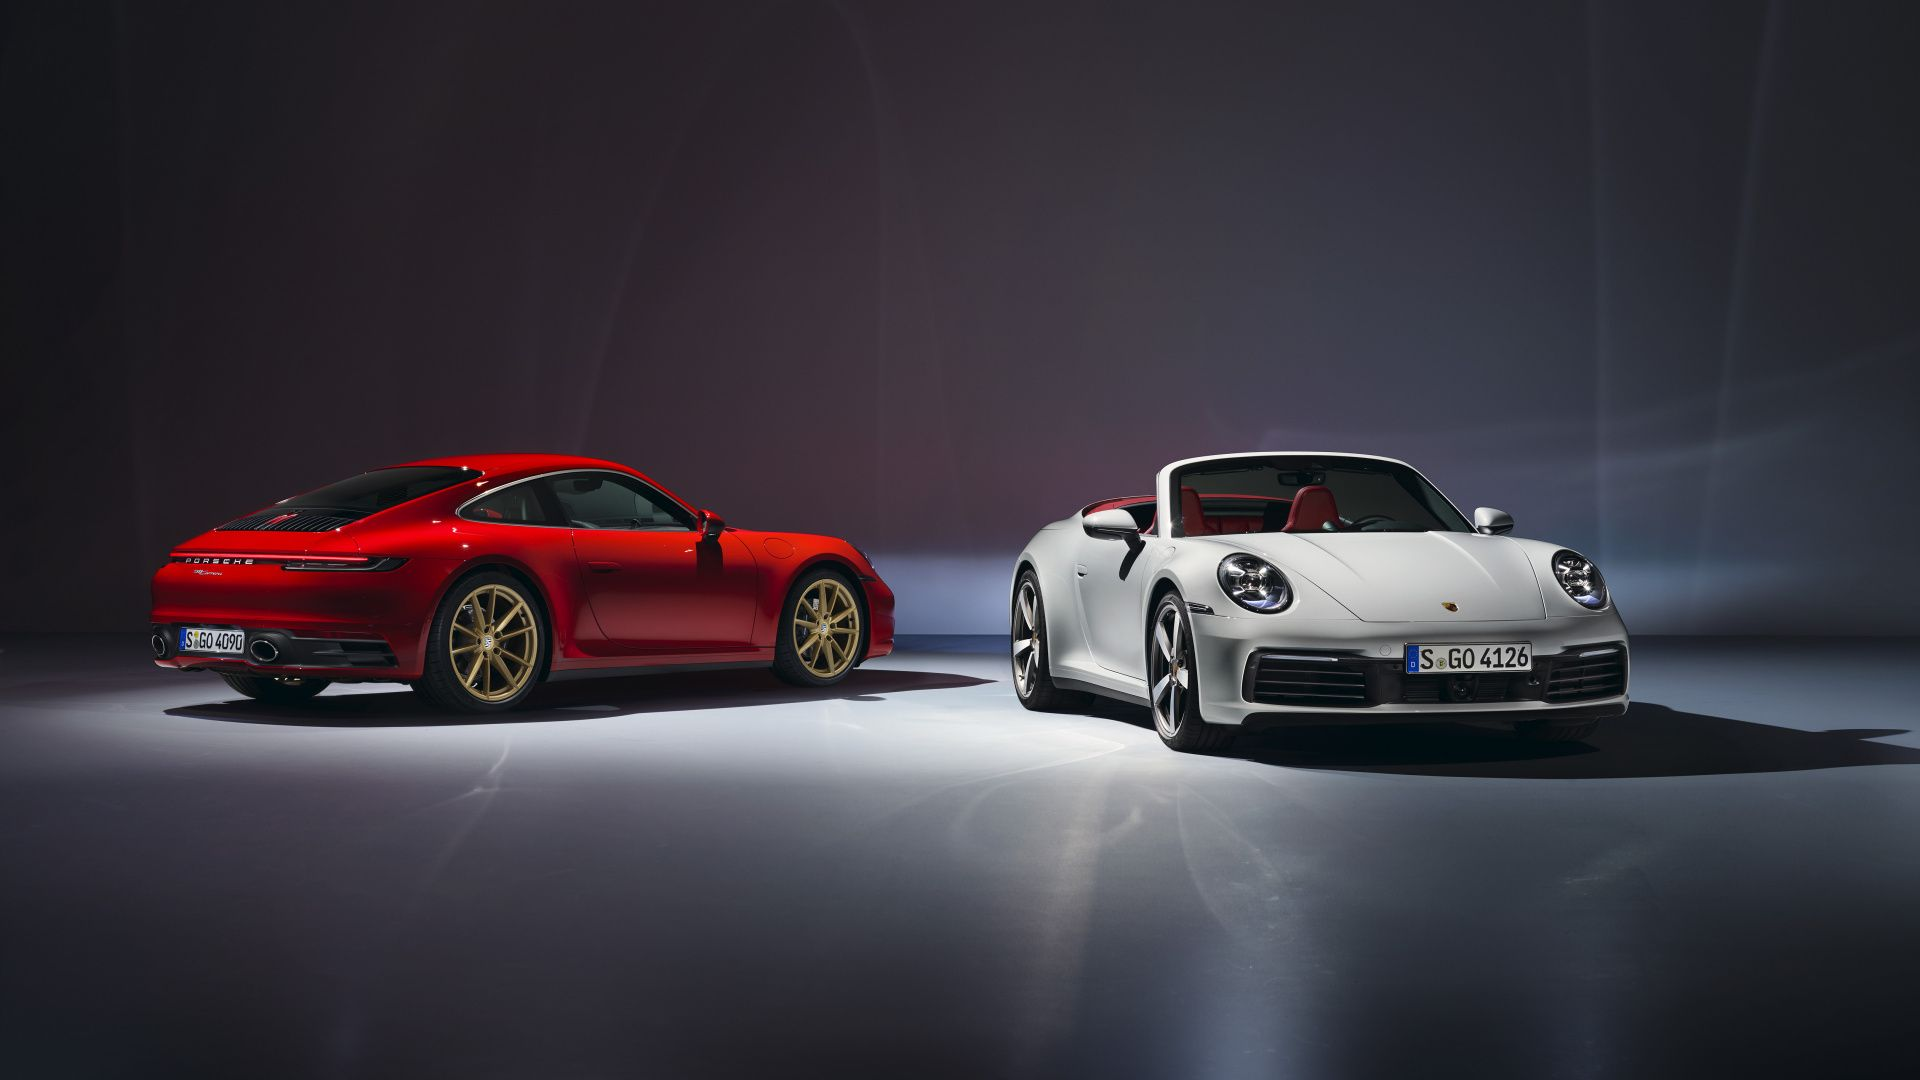 1920x1080 Red And White Cars Porsche Wallpaper Porsche 911 Porsche 911 Carrera Porsche